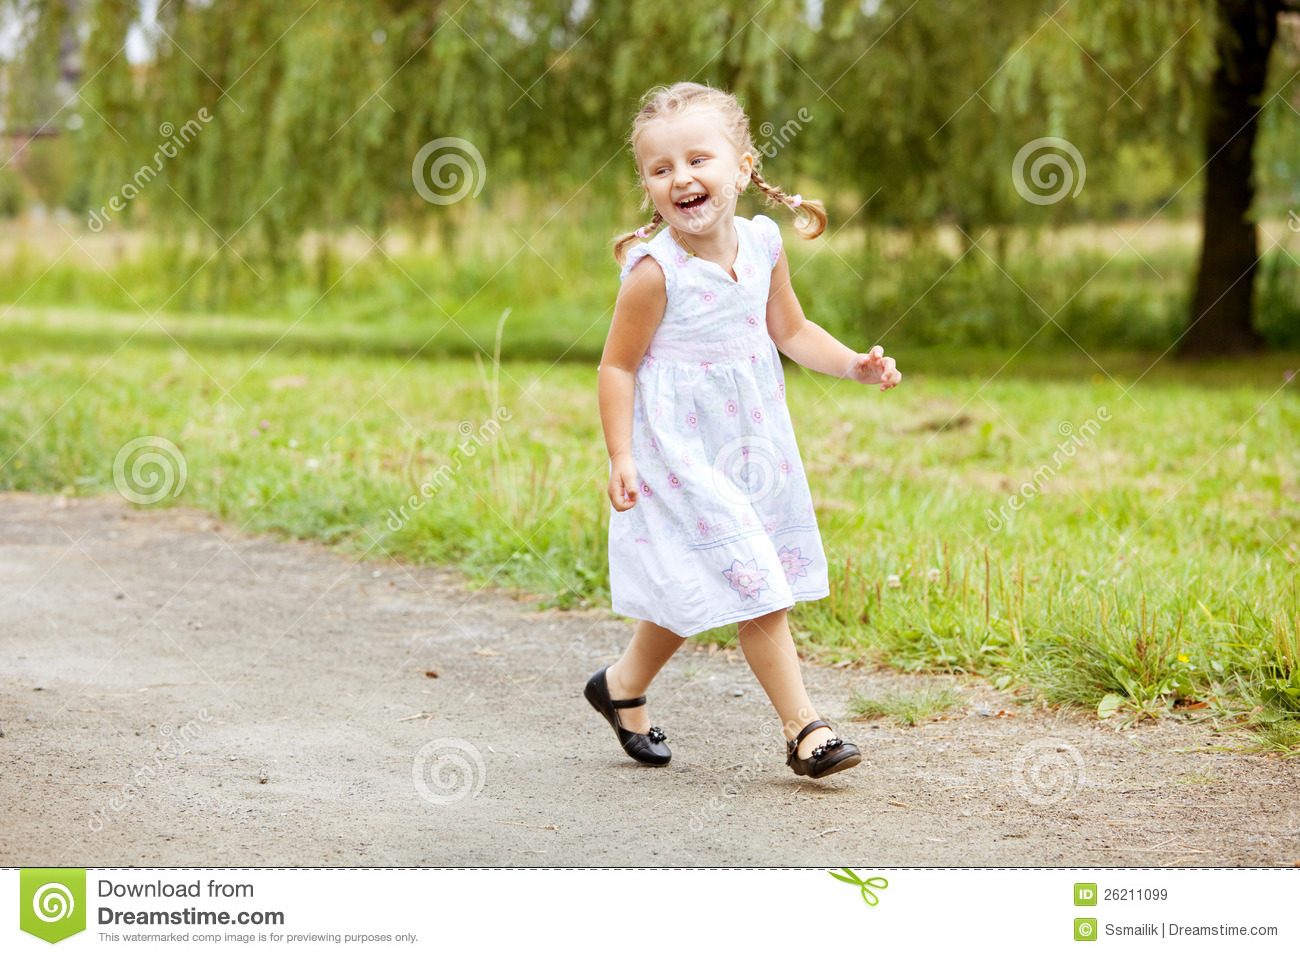 Child running away from home - Royalty Free Stock Photo